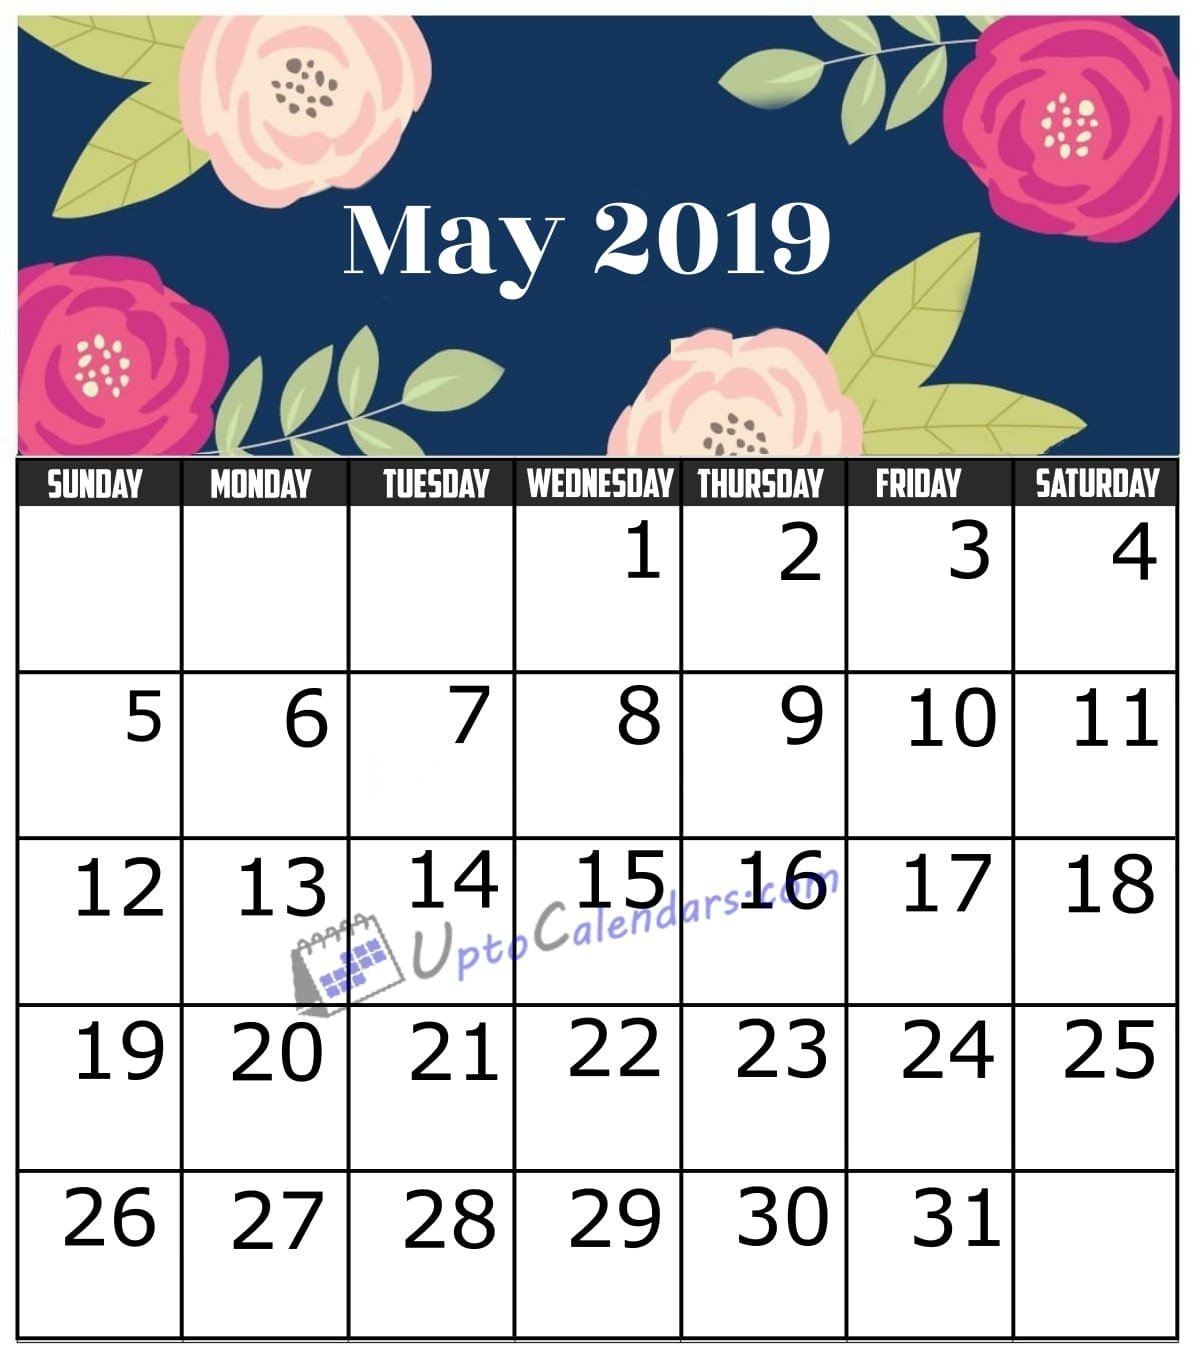 May 2019 Calendar Printable Template With Holidays Pdf Word Excel May 5 2019 Calendar